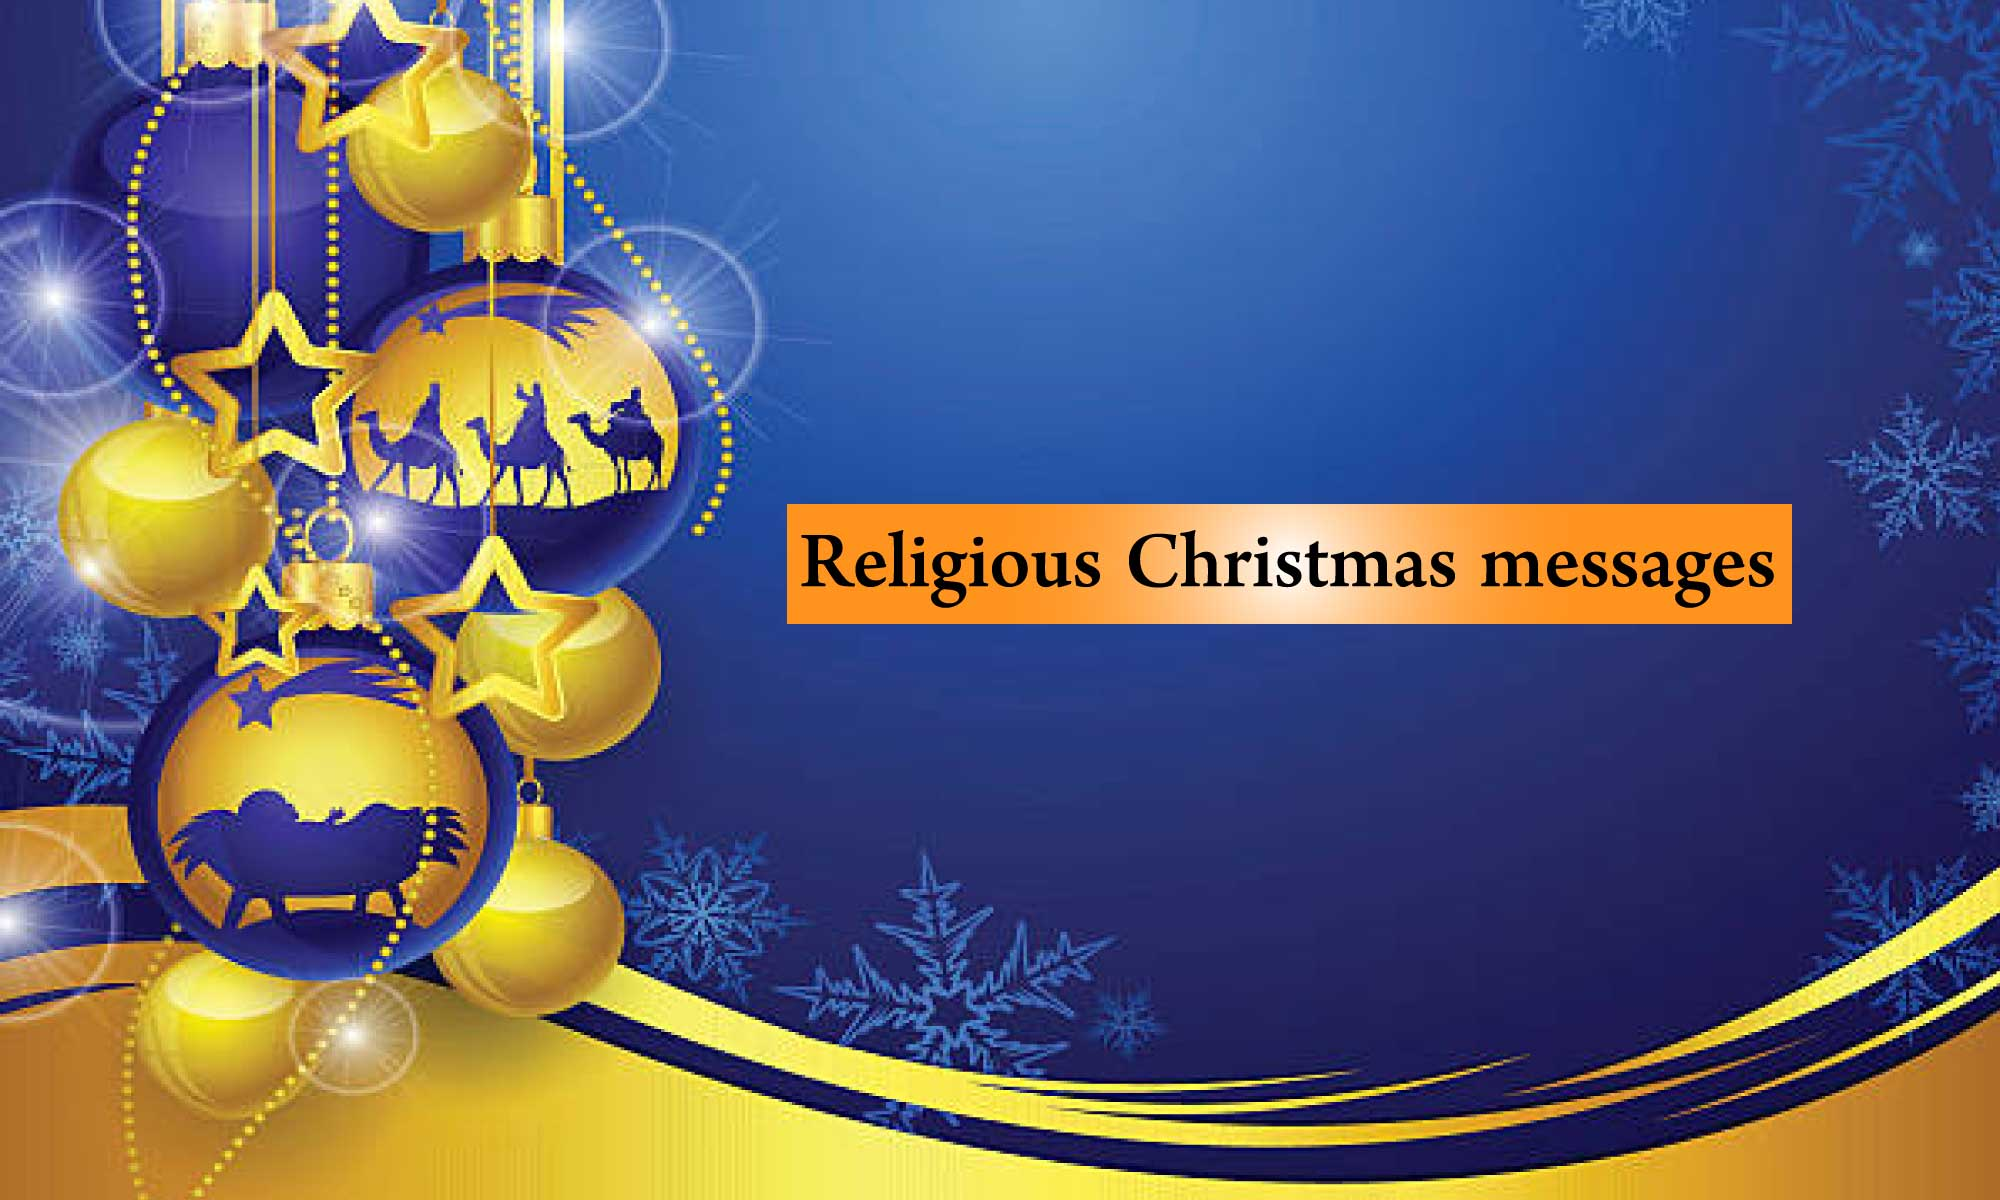 Religious-Christmas-messages